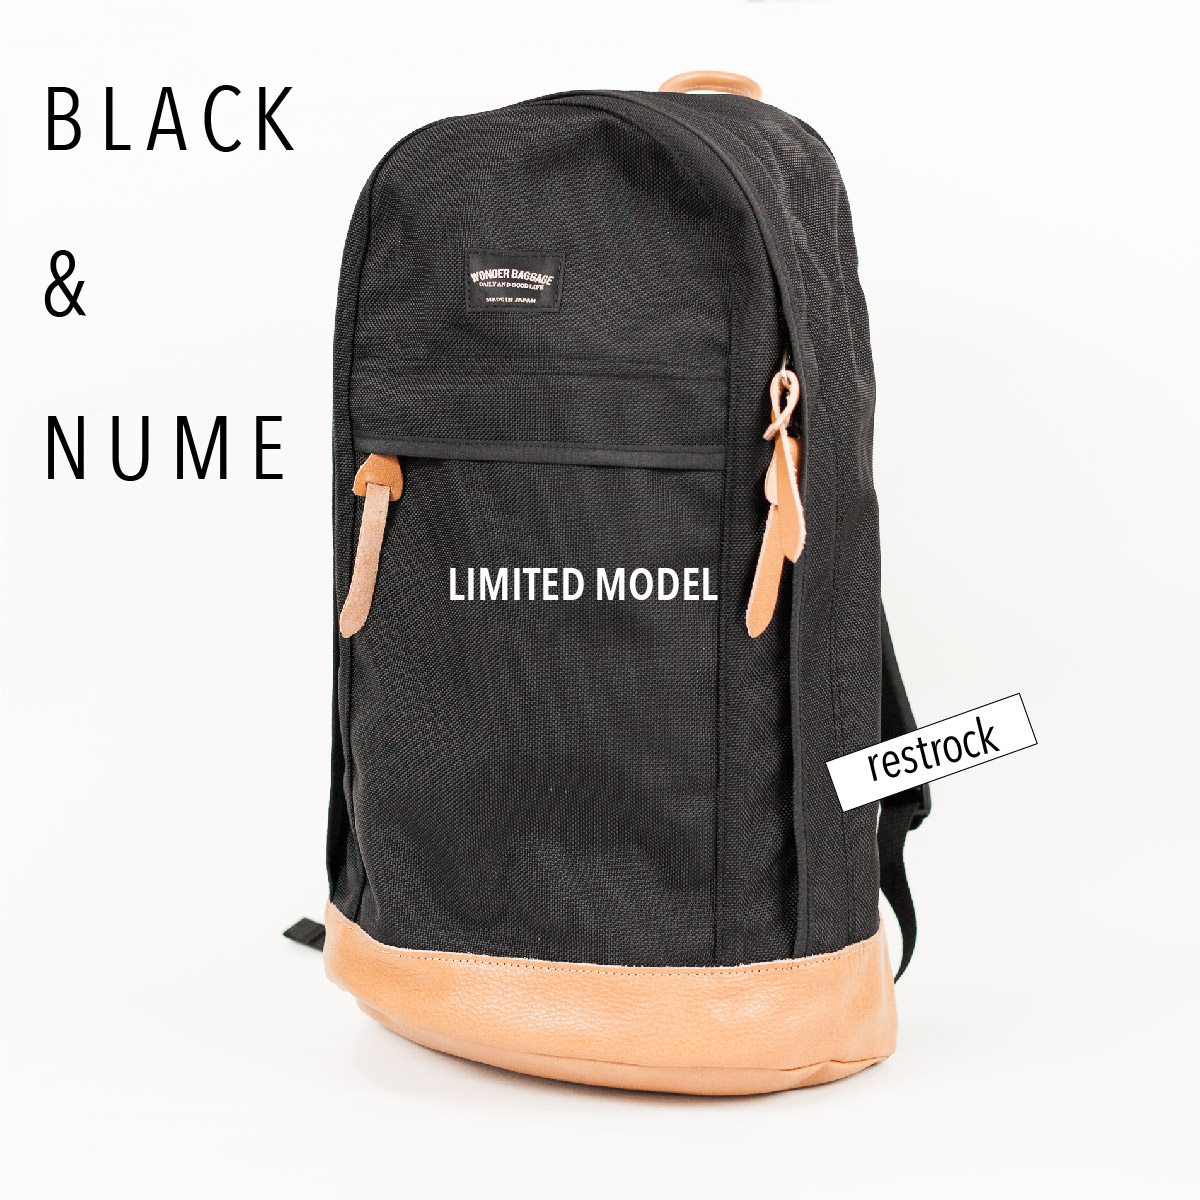 wonder baggage black and nume 限定モデル